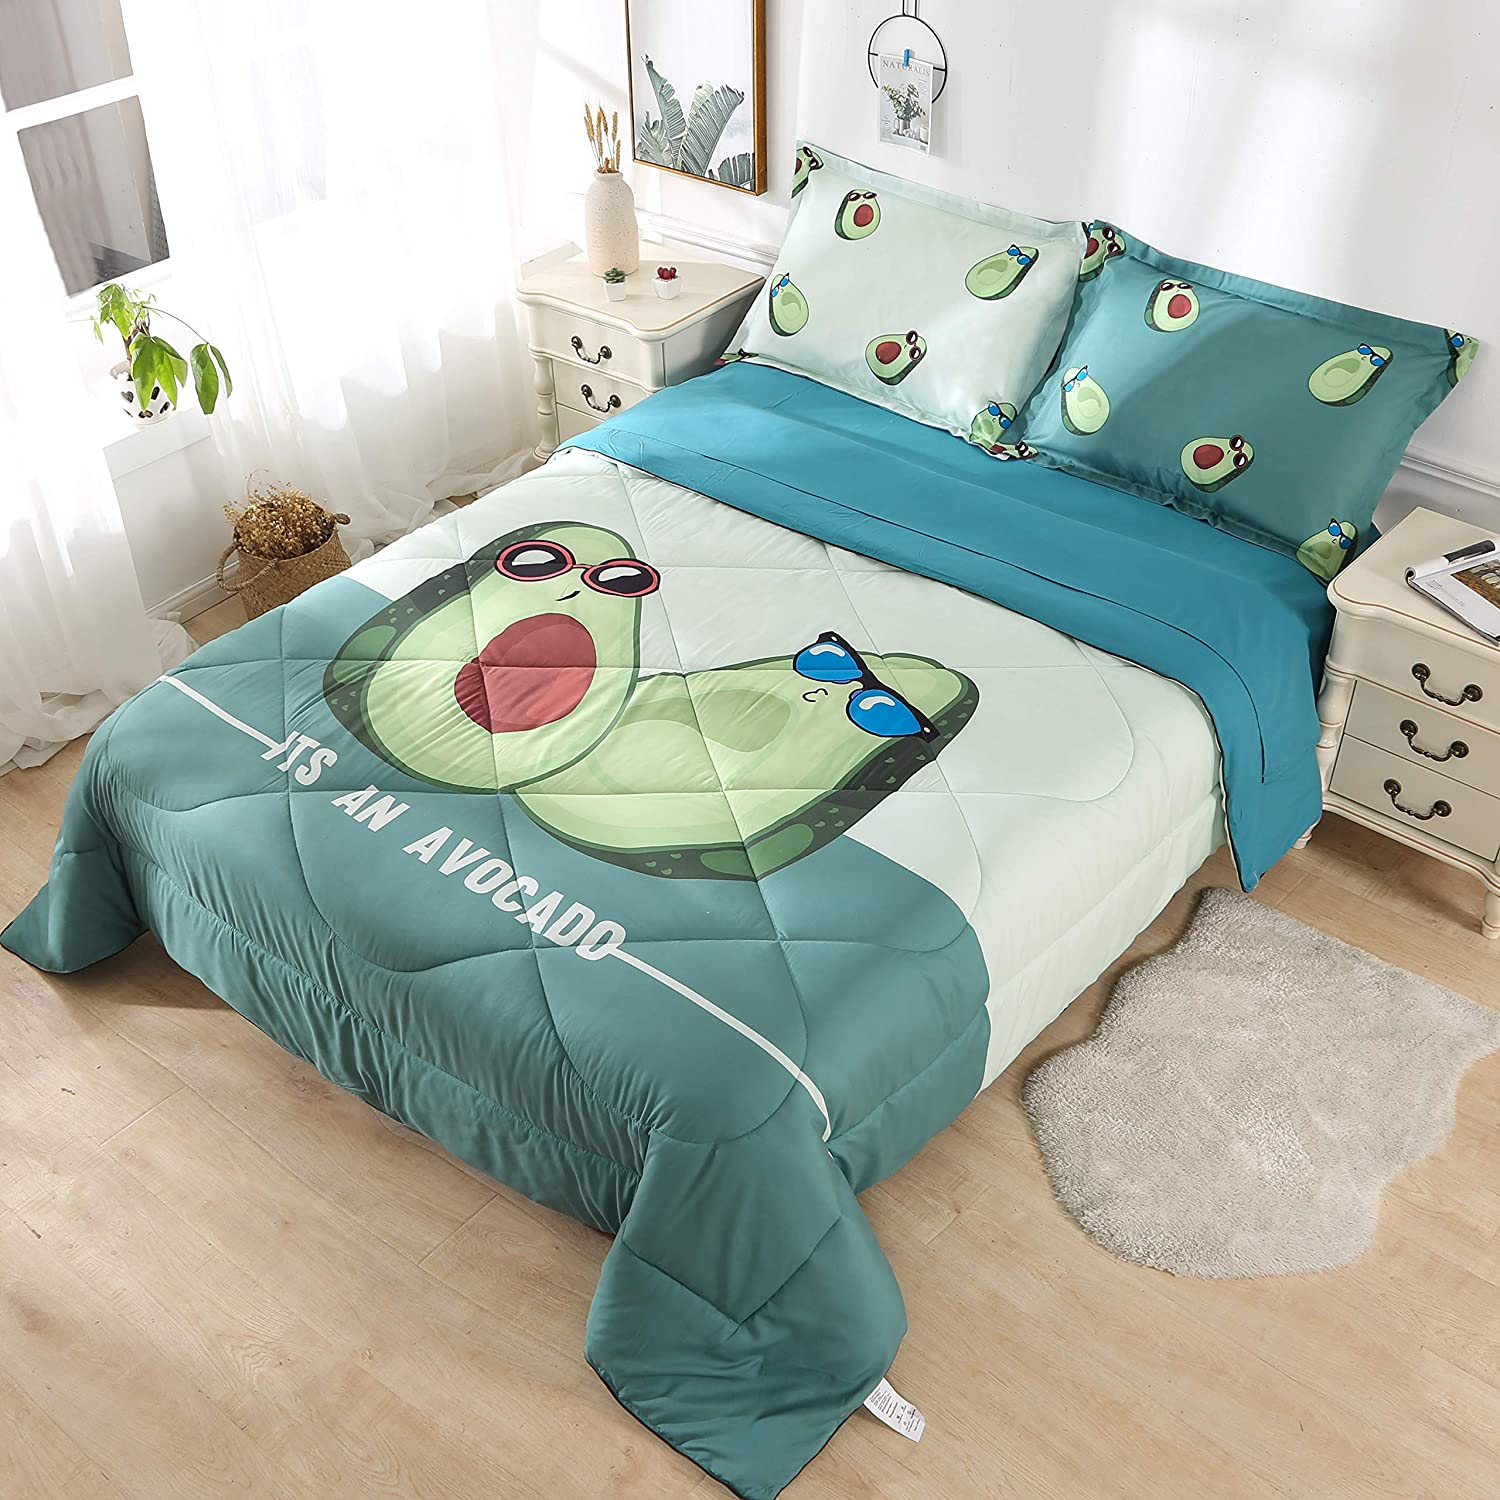 Flat Sheet Wowelife Avocado Bedding Set Twin 5 Piece 3D Comforter Sets Green with Comforter Twin, Avocado Fitted Sheet and 2 Pillow Cases